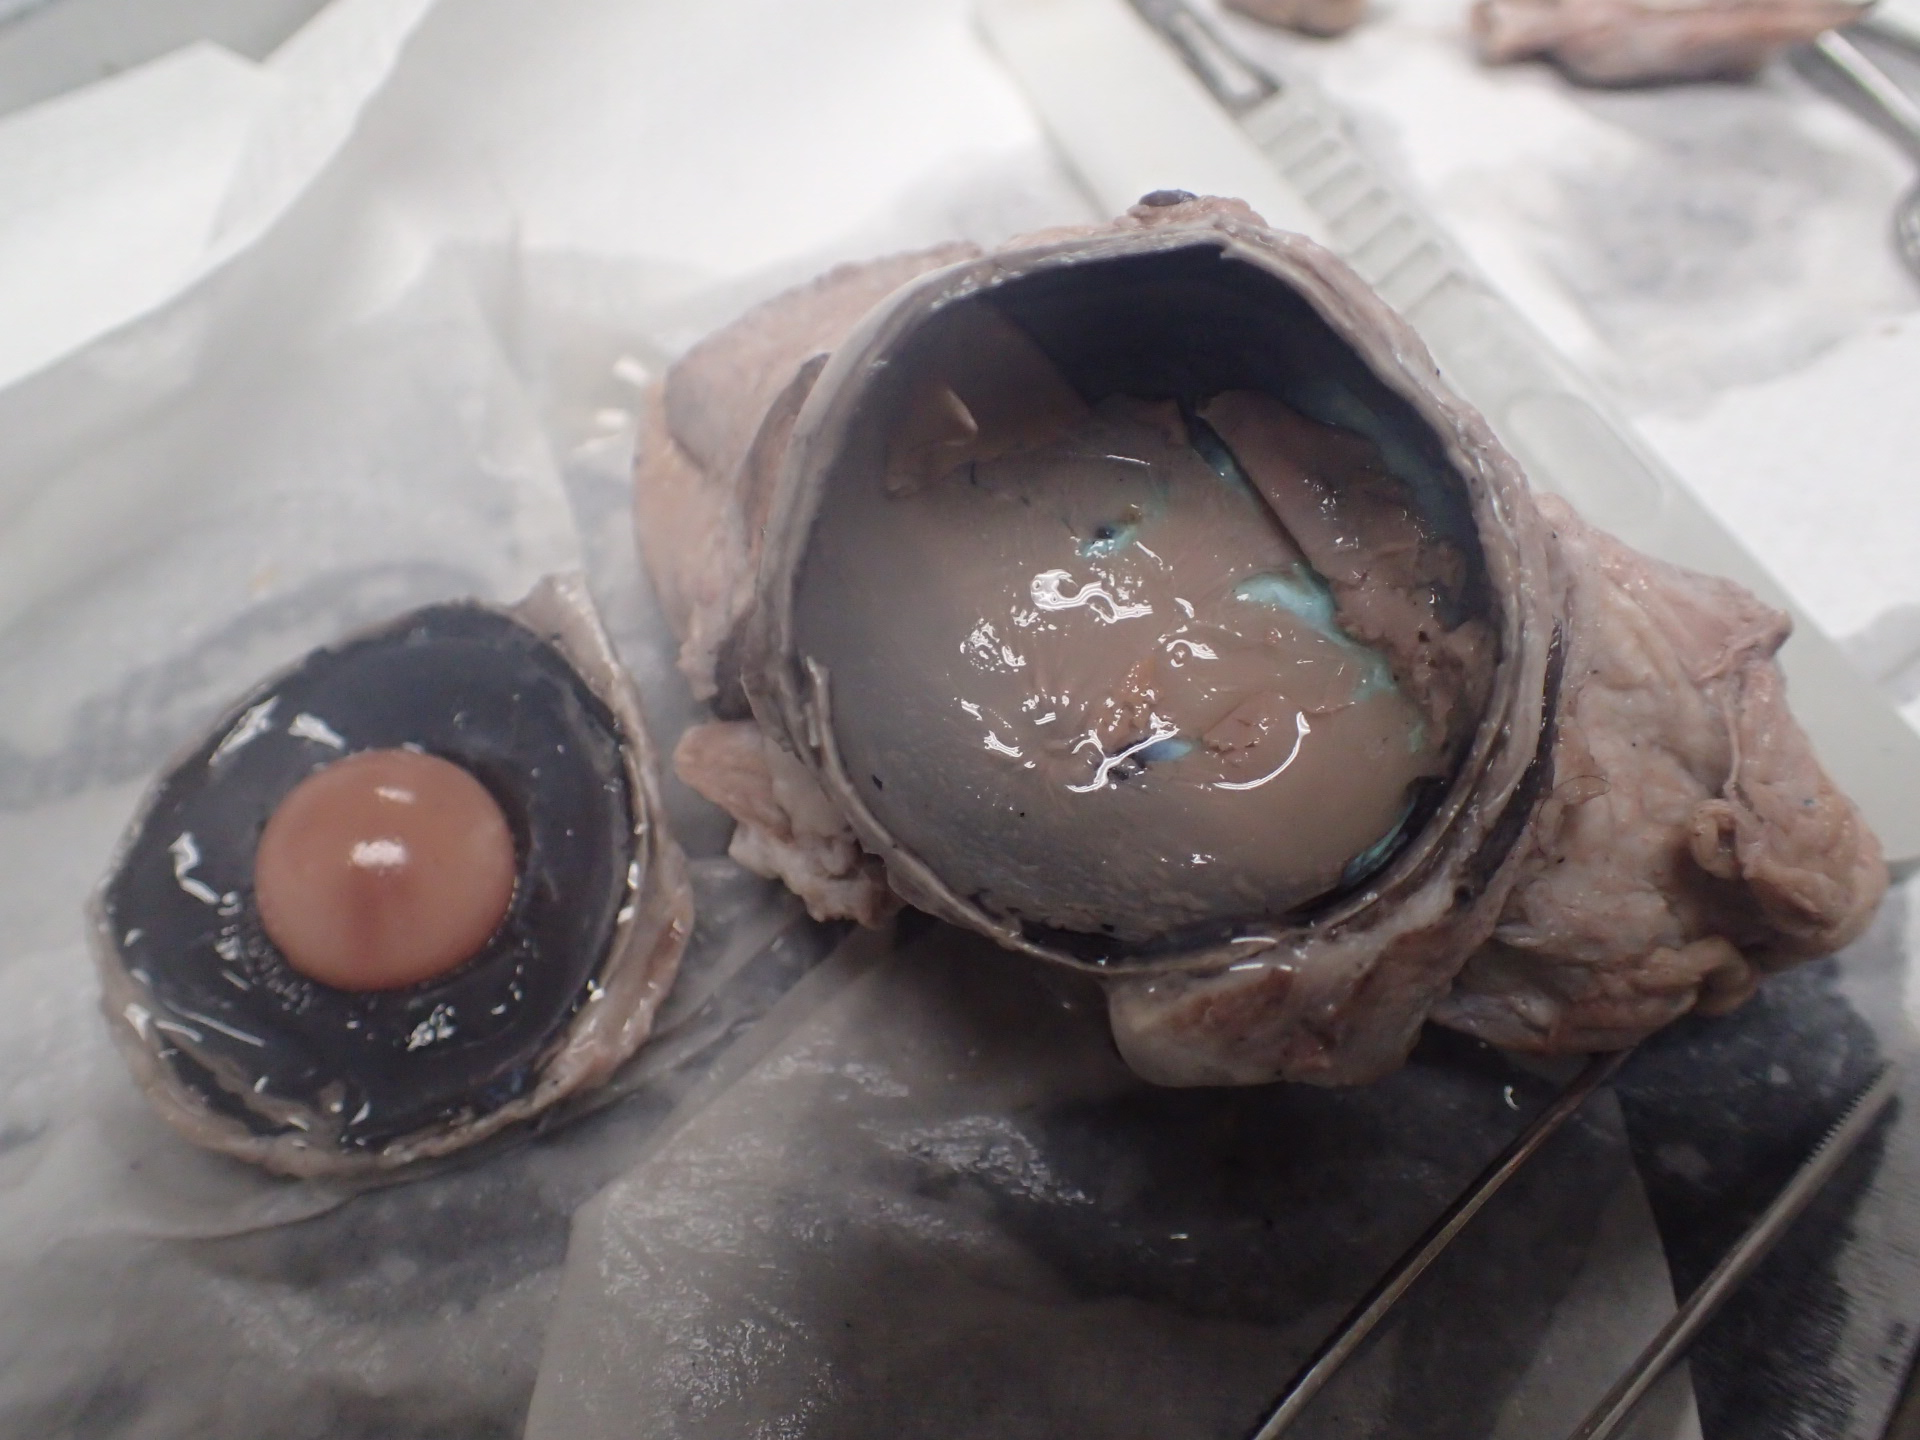 Cow Eye Dissection | Anatomy Corner